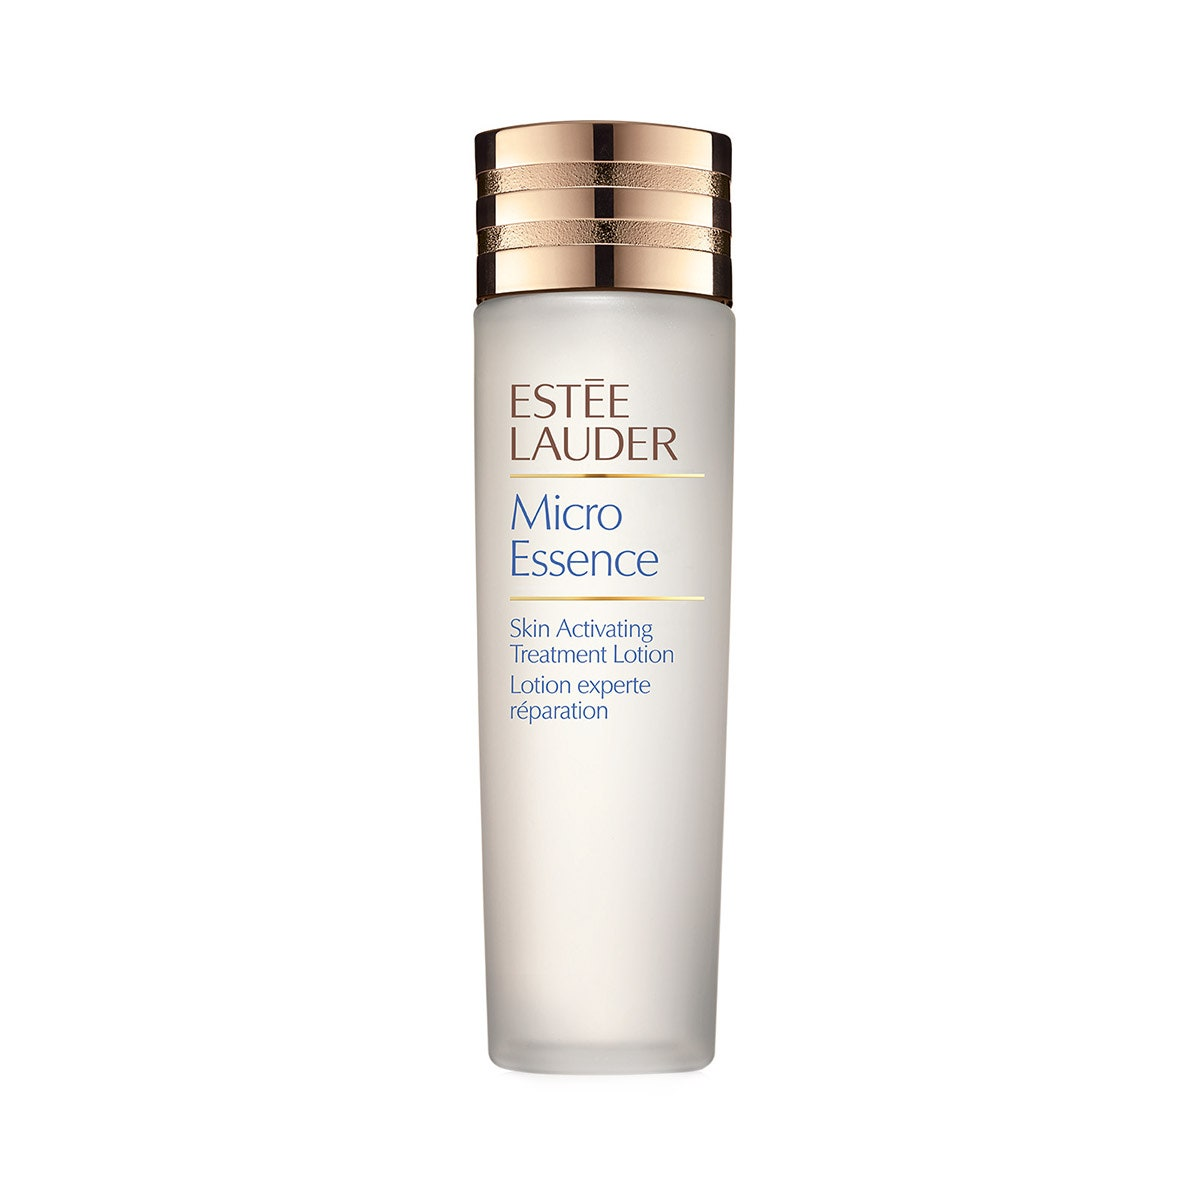 estee lauder micro essence review